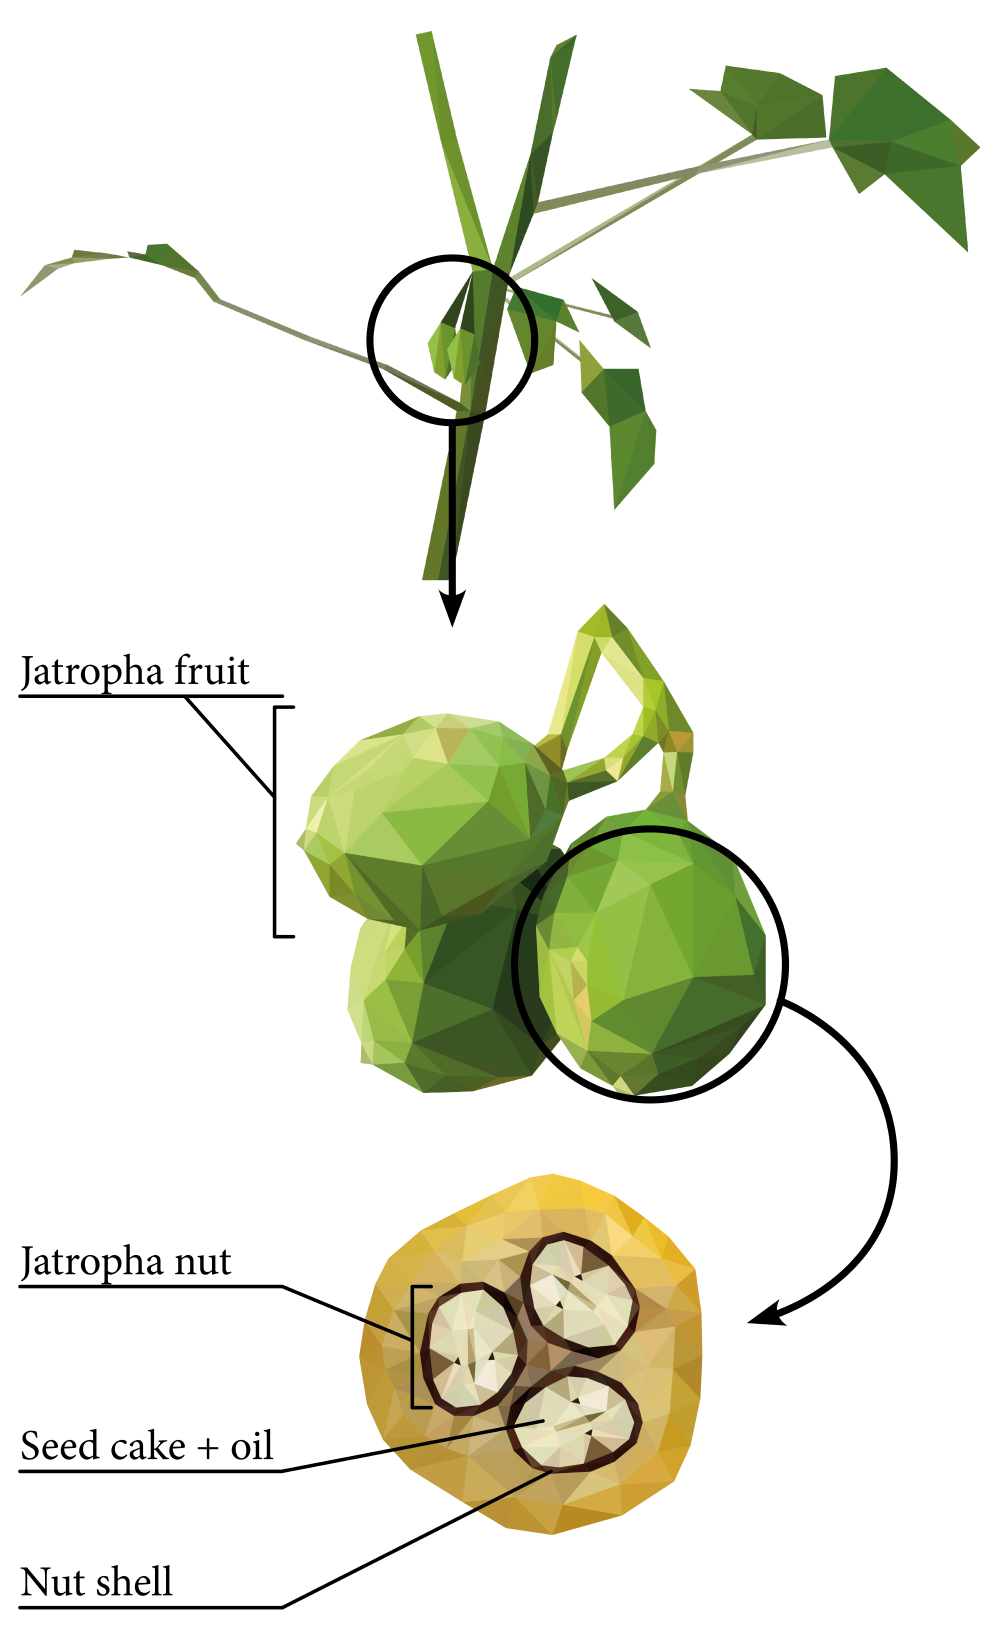 Jatropha and its applications.